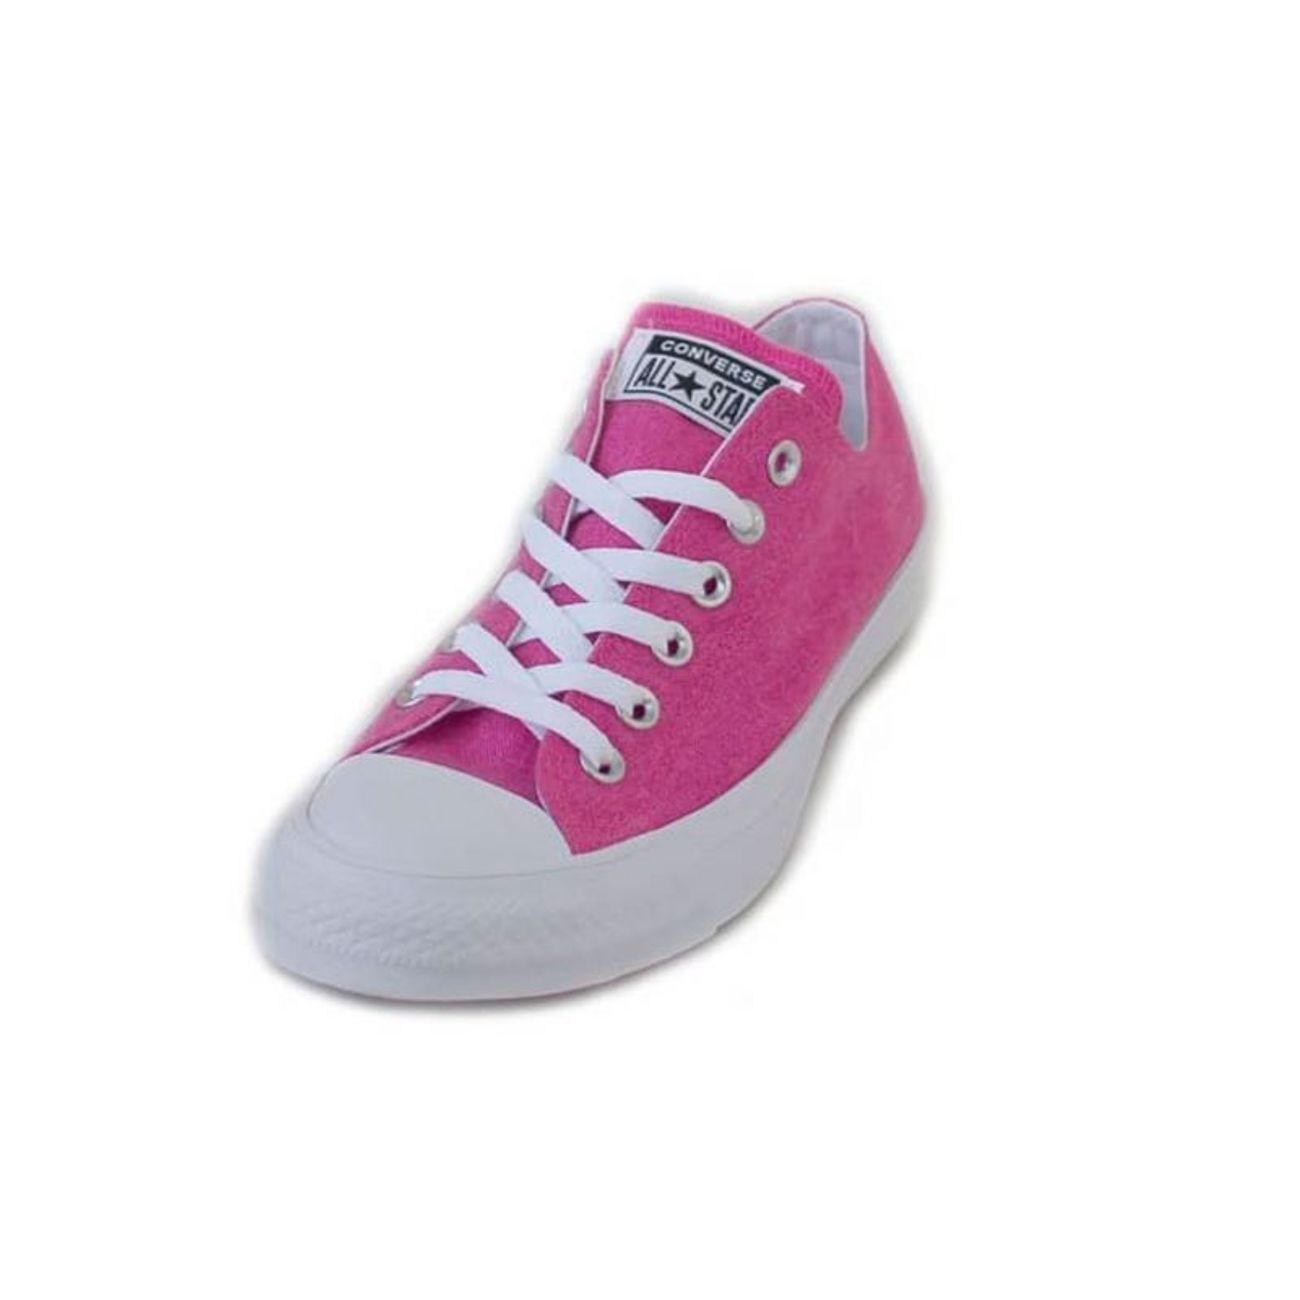 Rosa Chuck Mujer Cv163180c Converse All Top Court Low Taylor Adulte 502 Padel Star Fade 3jc5RSAL4q